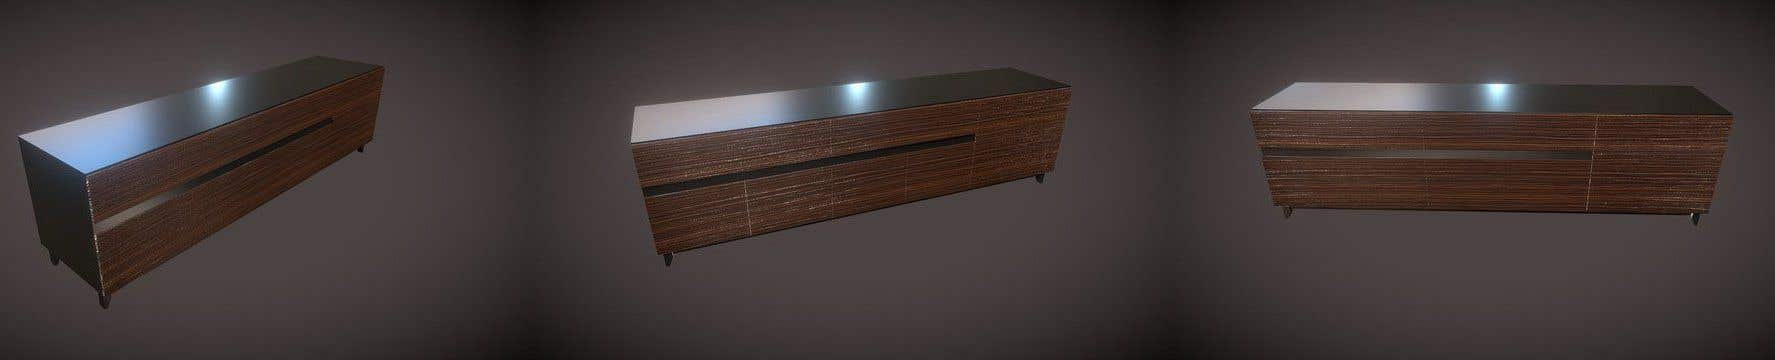 Proposition n°38 du concours Render an animated file for configuring and re-configuring a wall bookcase system.